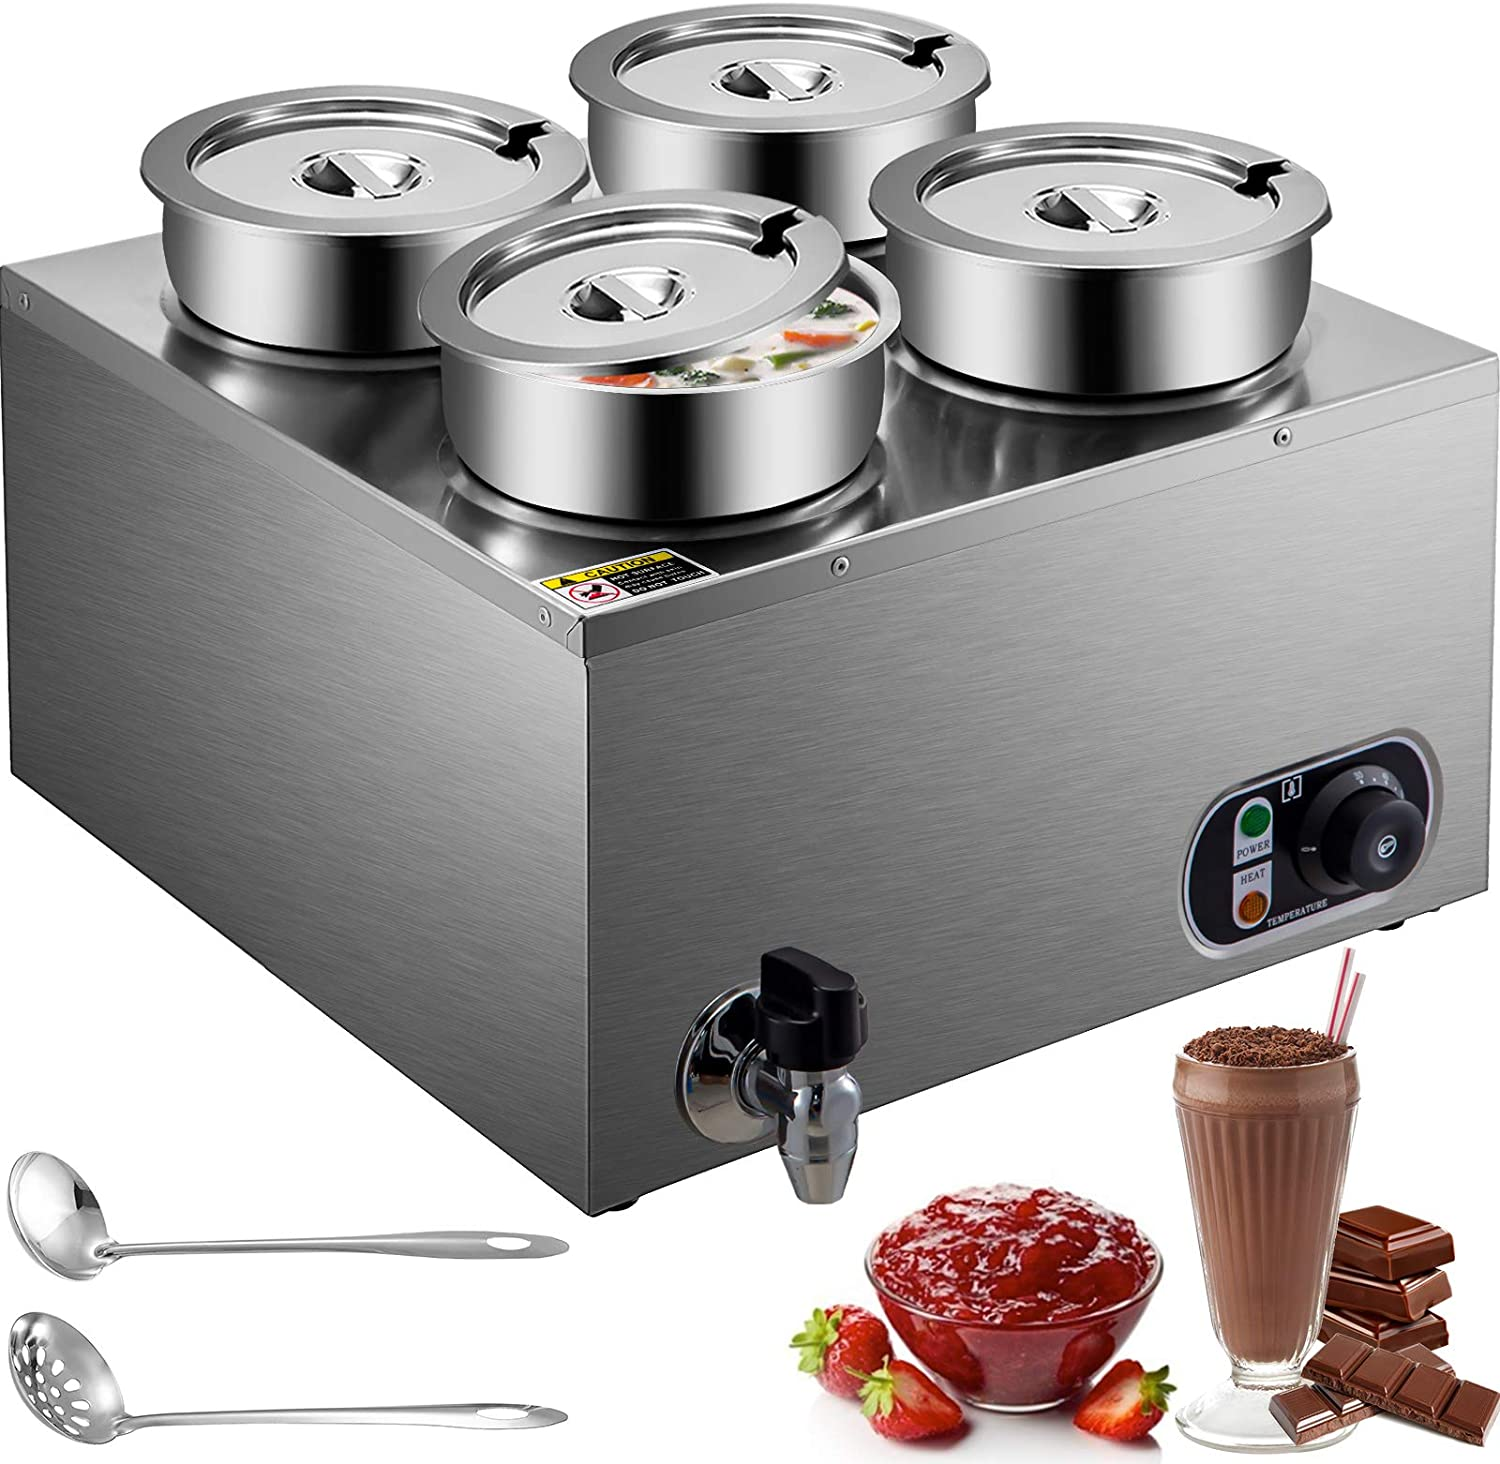 VEVOR 110V Commercial Food Warmer 16.8 Qt Capacity, 1500W Electric Soup Warmer Adjustable Temp.86-185℉, Stainless Steel Countertop Soup Pot with Tap, Bain Marie Food Warmer for Cheese/Hot Dog/Rice